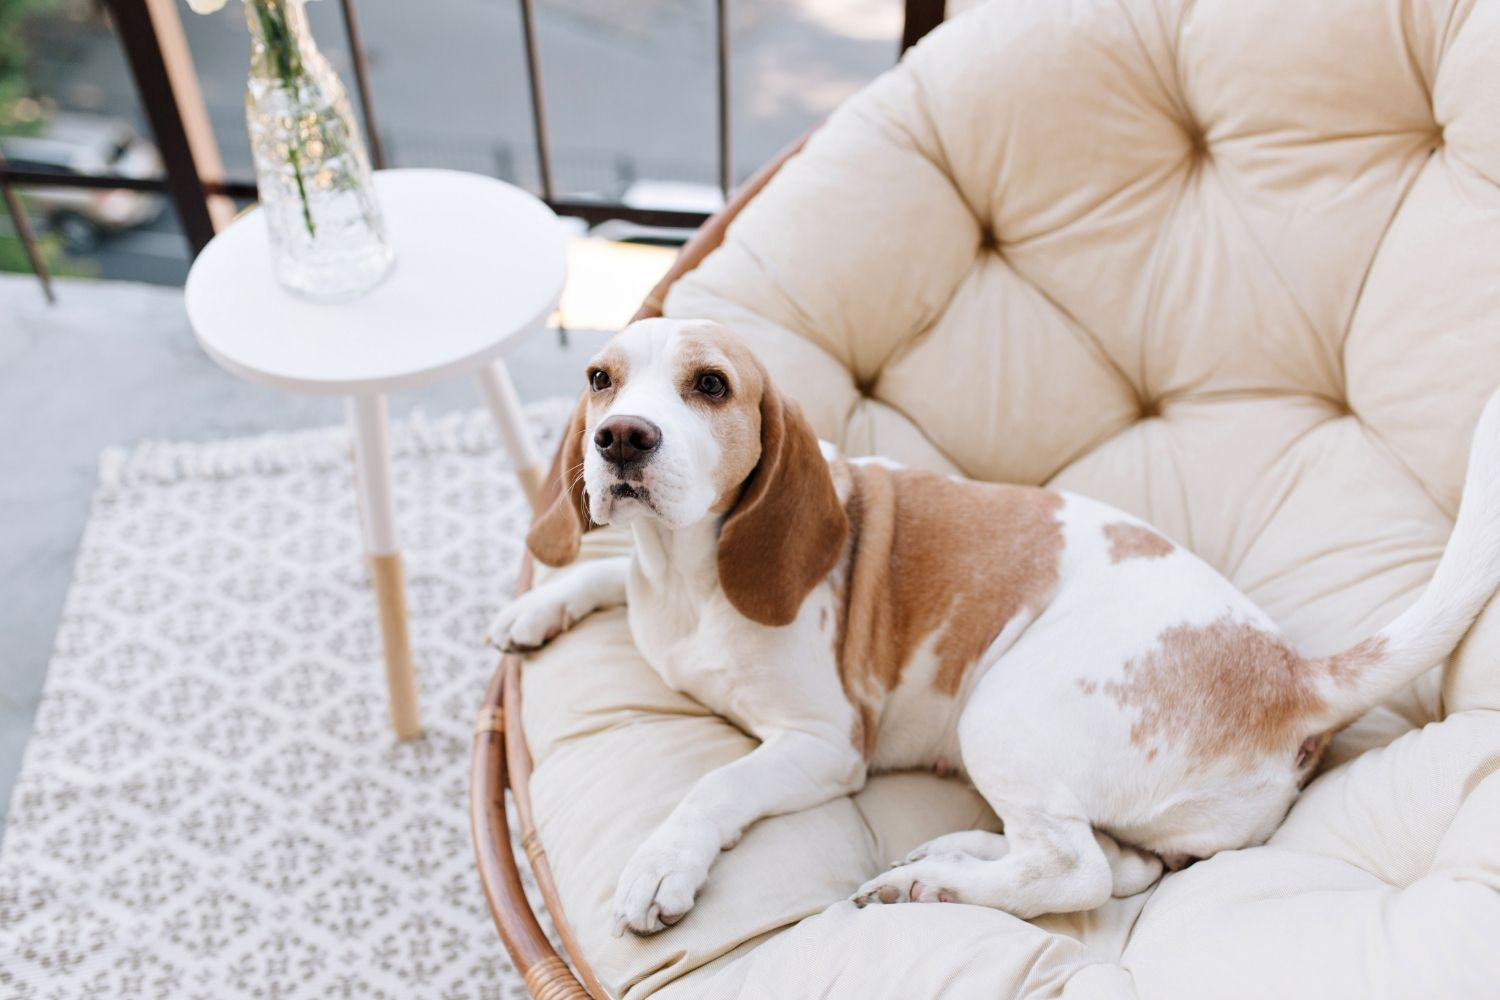 So Hard to Say Goodbye: Separation Anxiety in Dogs